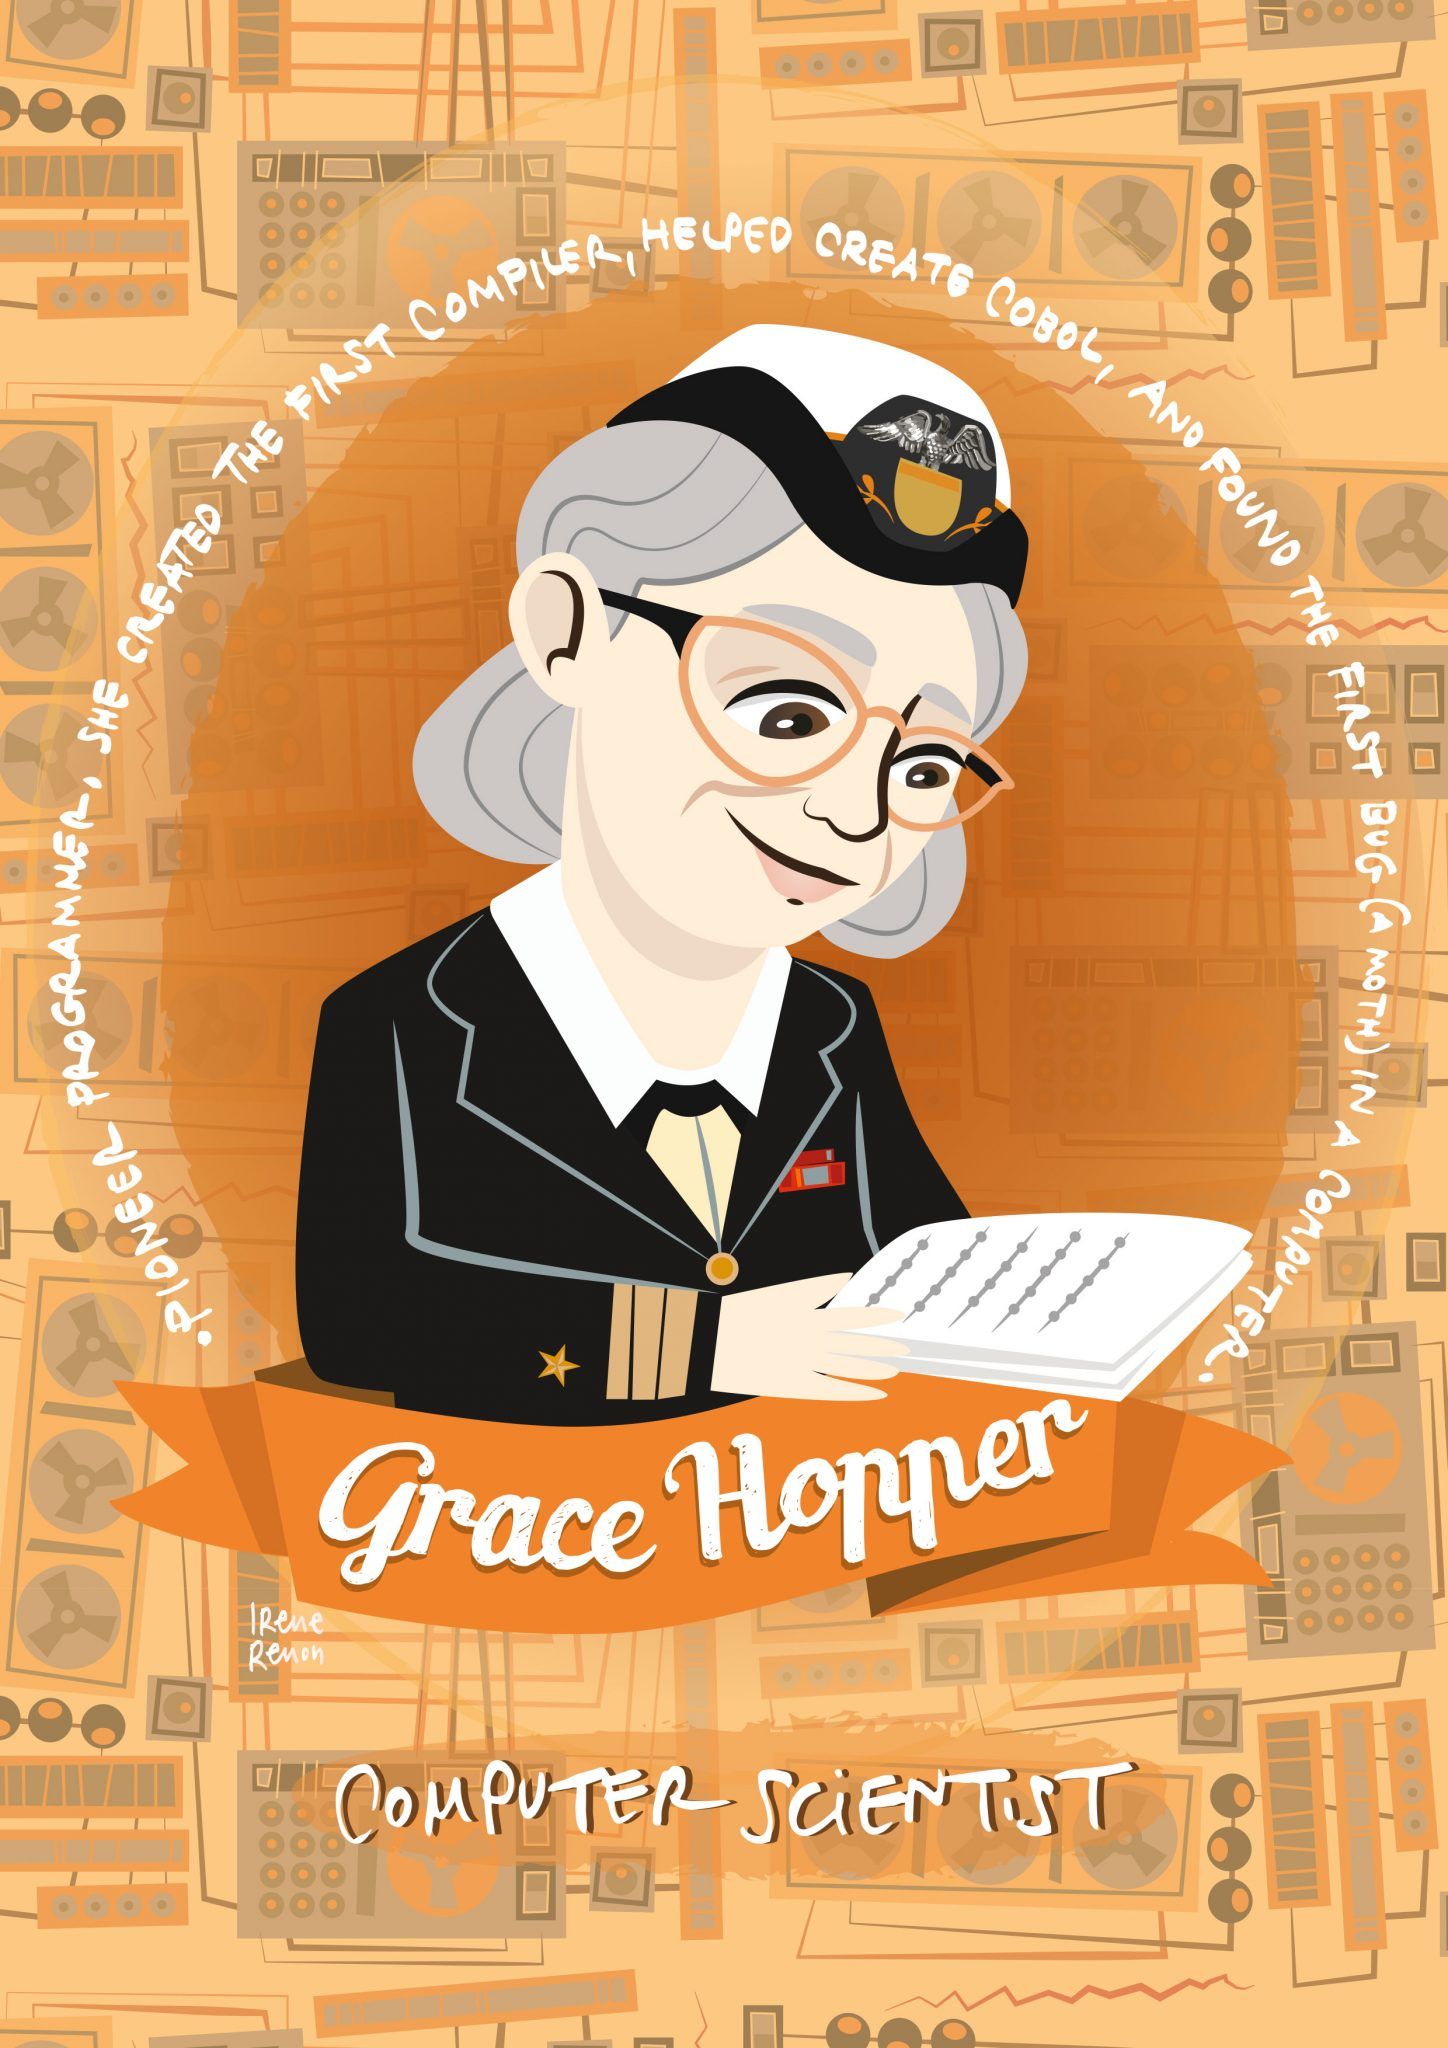 Grace hopper, programmer, women of science, women in science, donne nella scienza, ritratti illustrati donne nella scienza